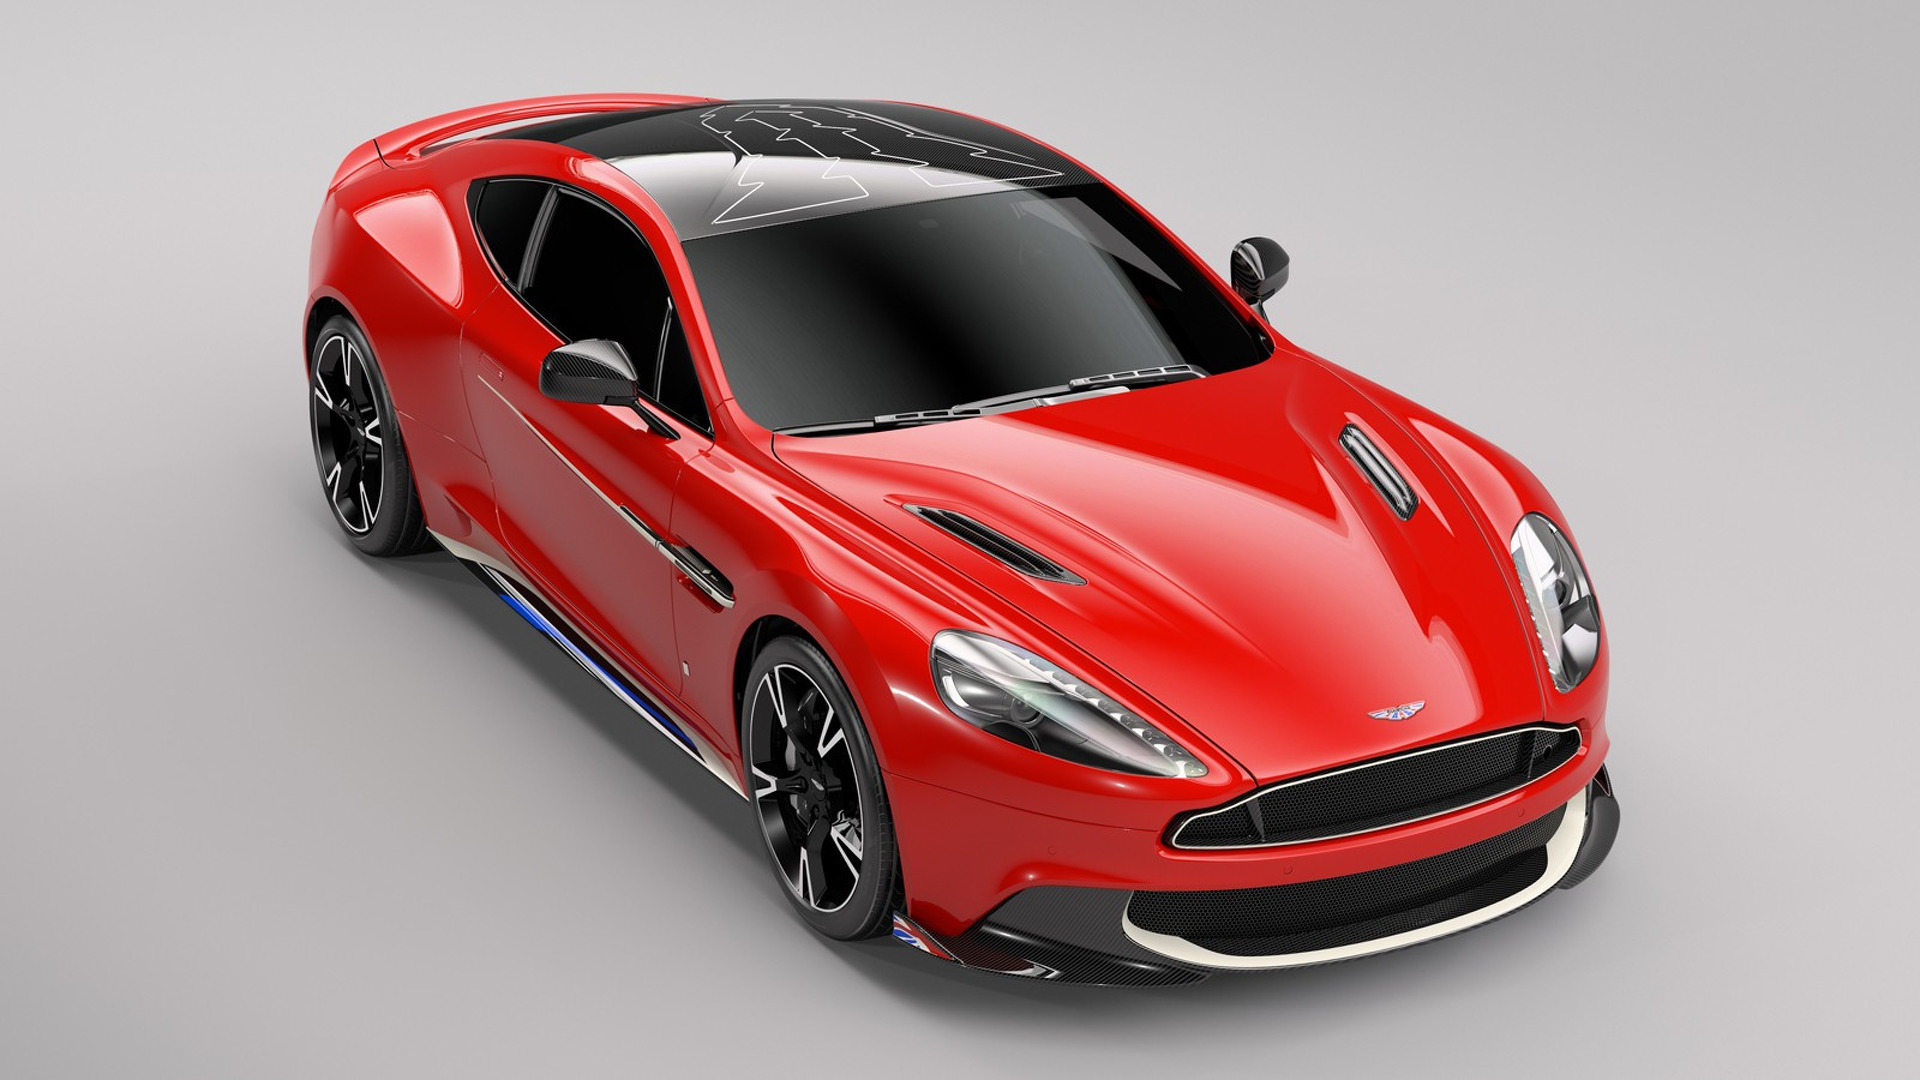 Aston Martin Vanquish S Red Arrows Edition (2)